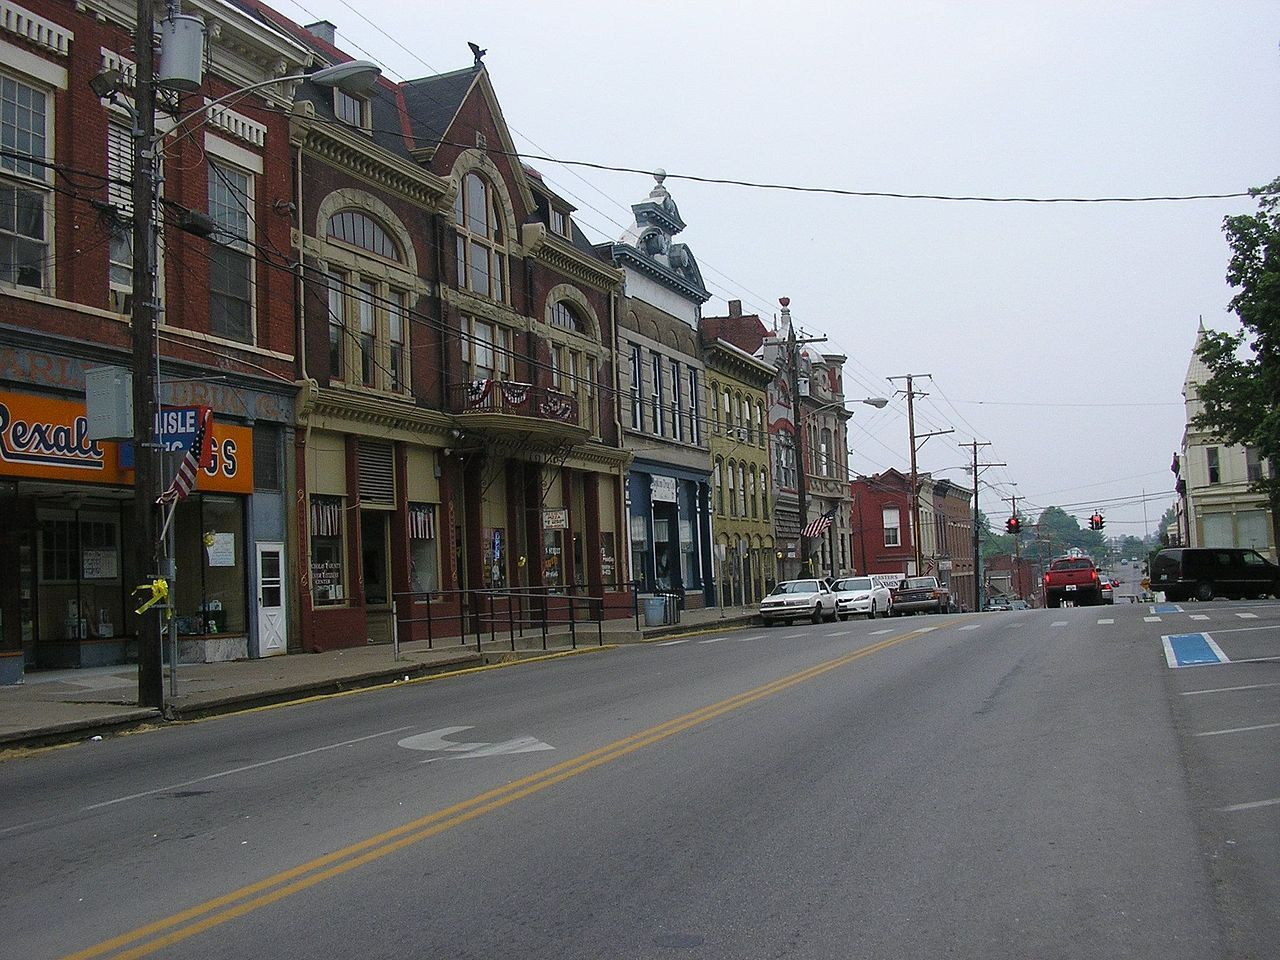 Carlisle Historic District in Nicholas County, Kentucky.